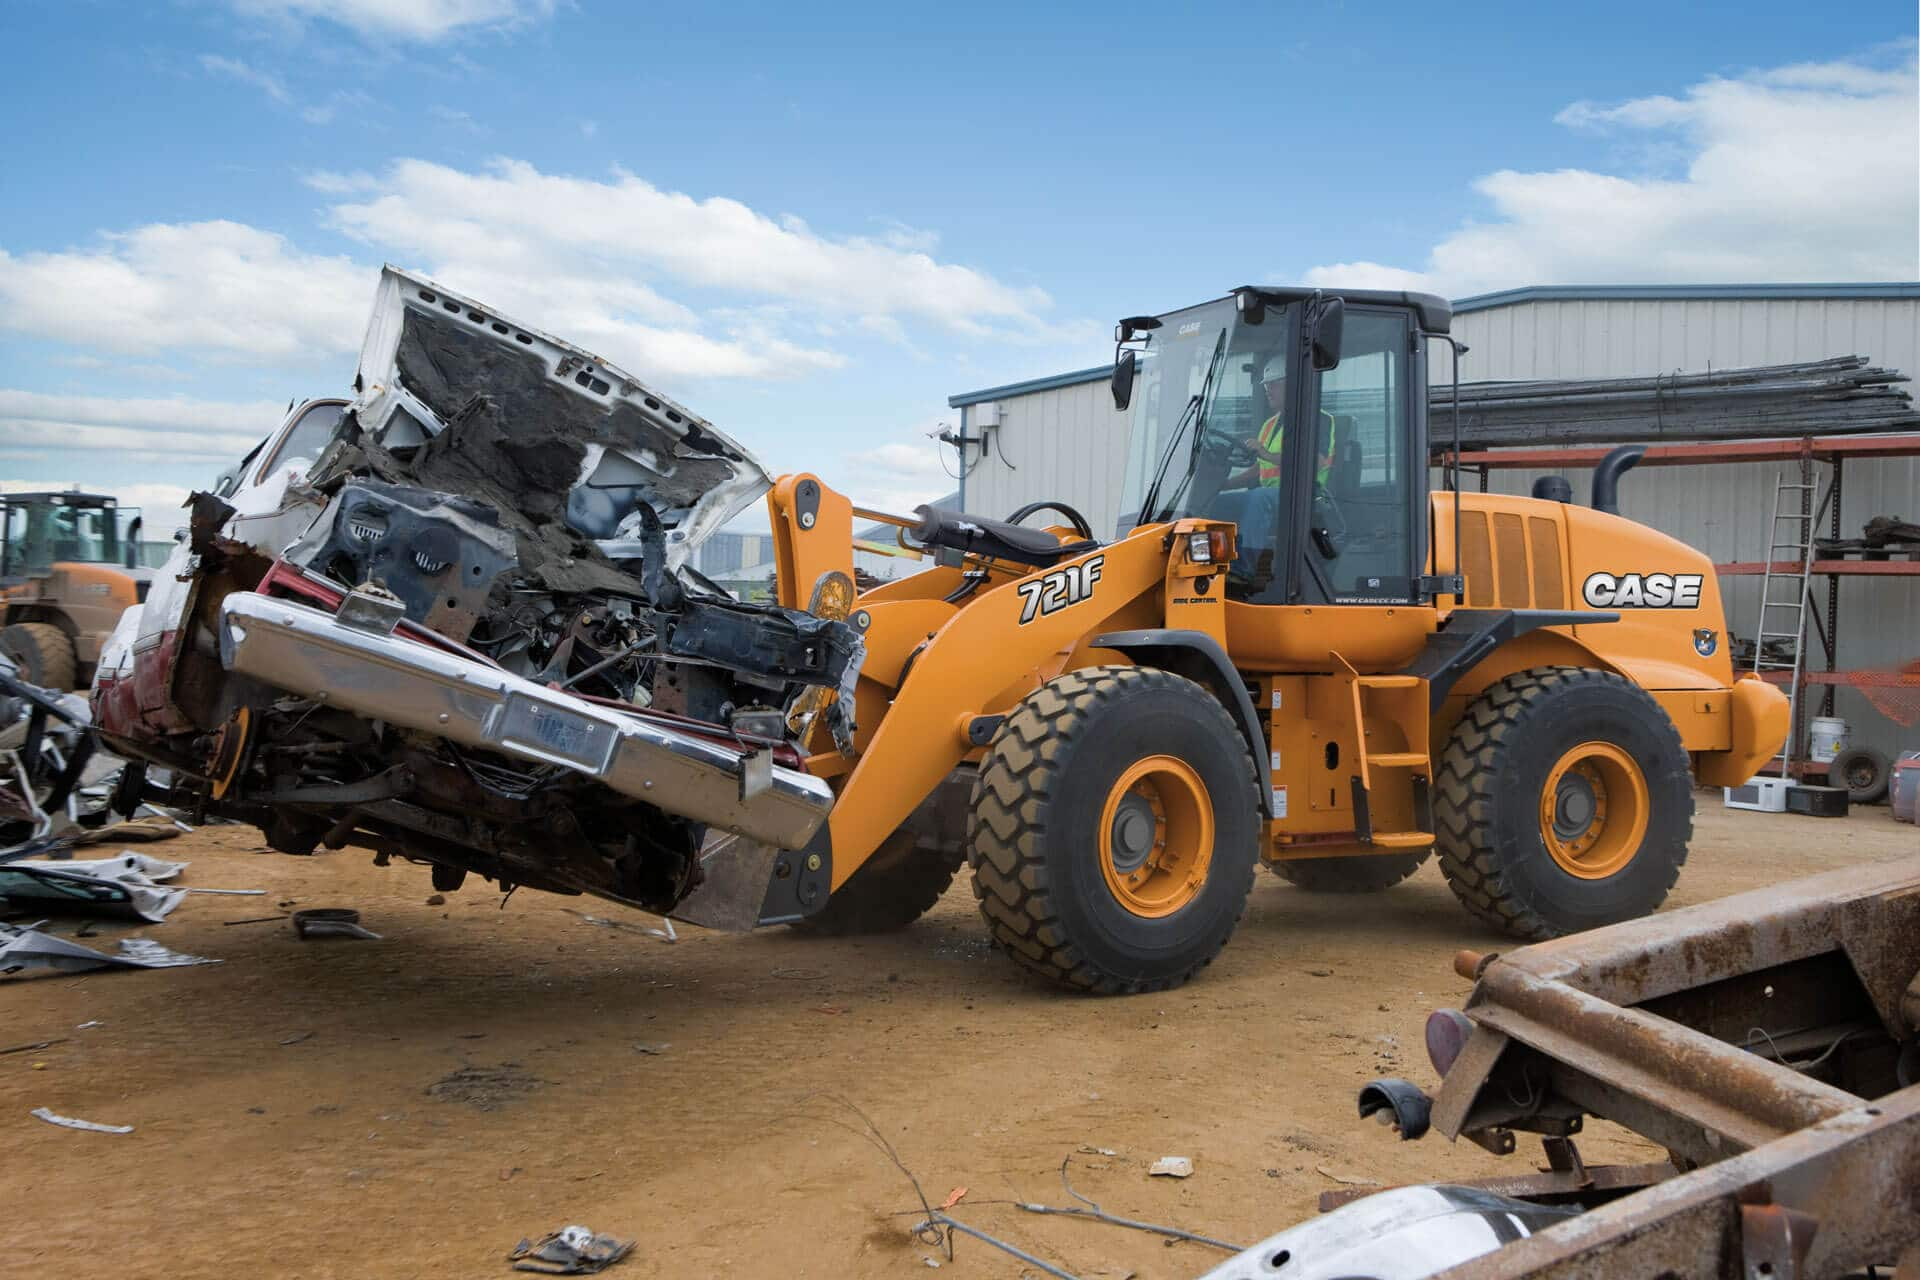 721F 8629_T4F?Width=1024&Height=576 case 721f wheel loader case construction equipment  at bayanpartner.co